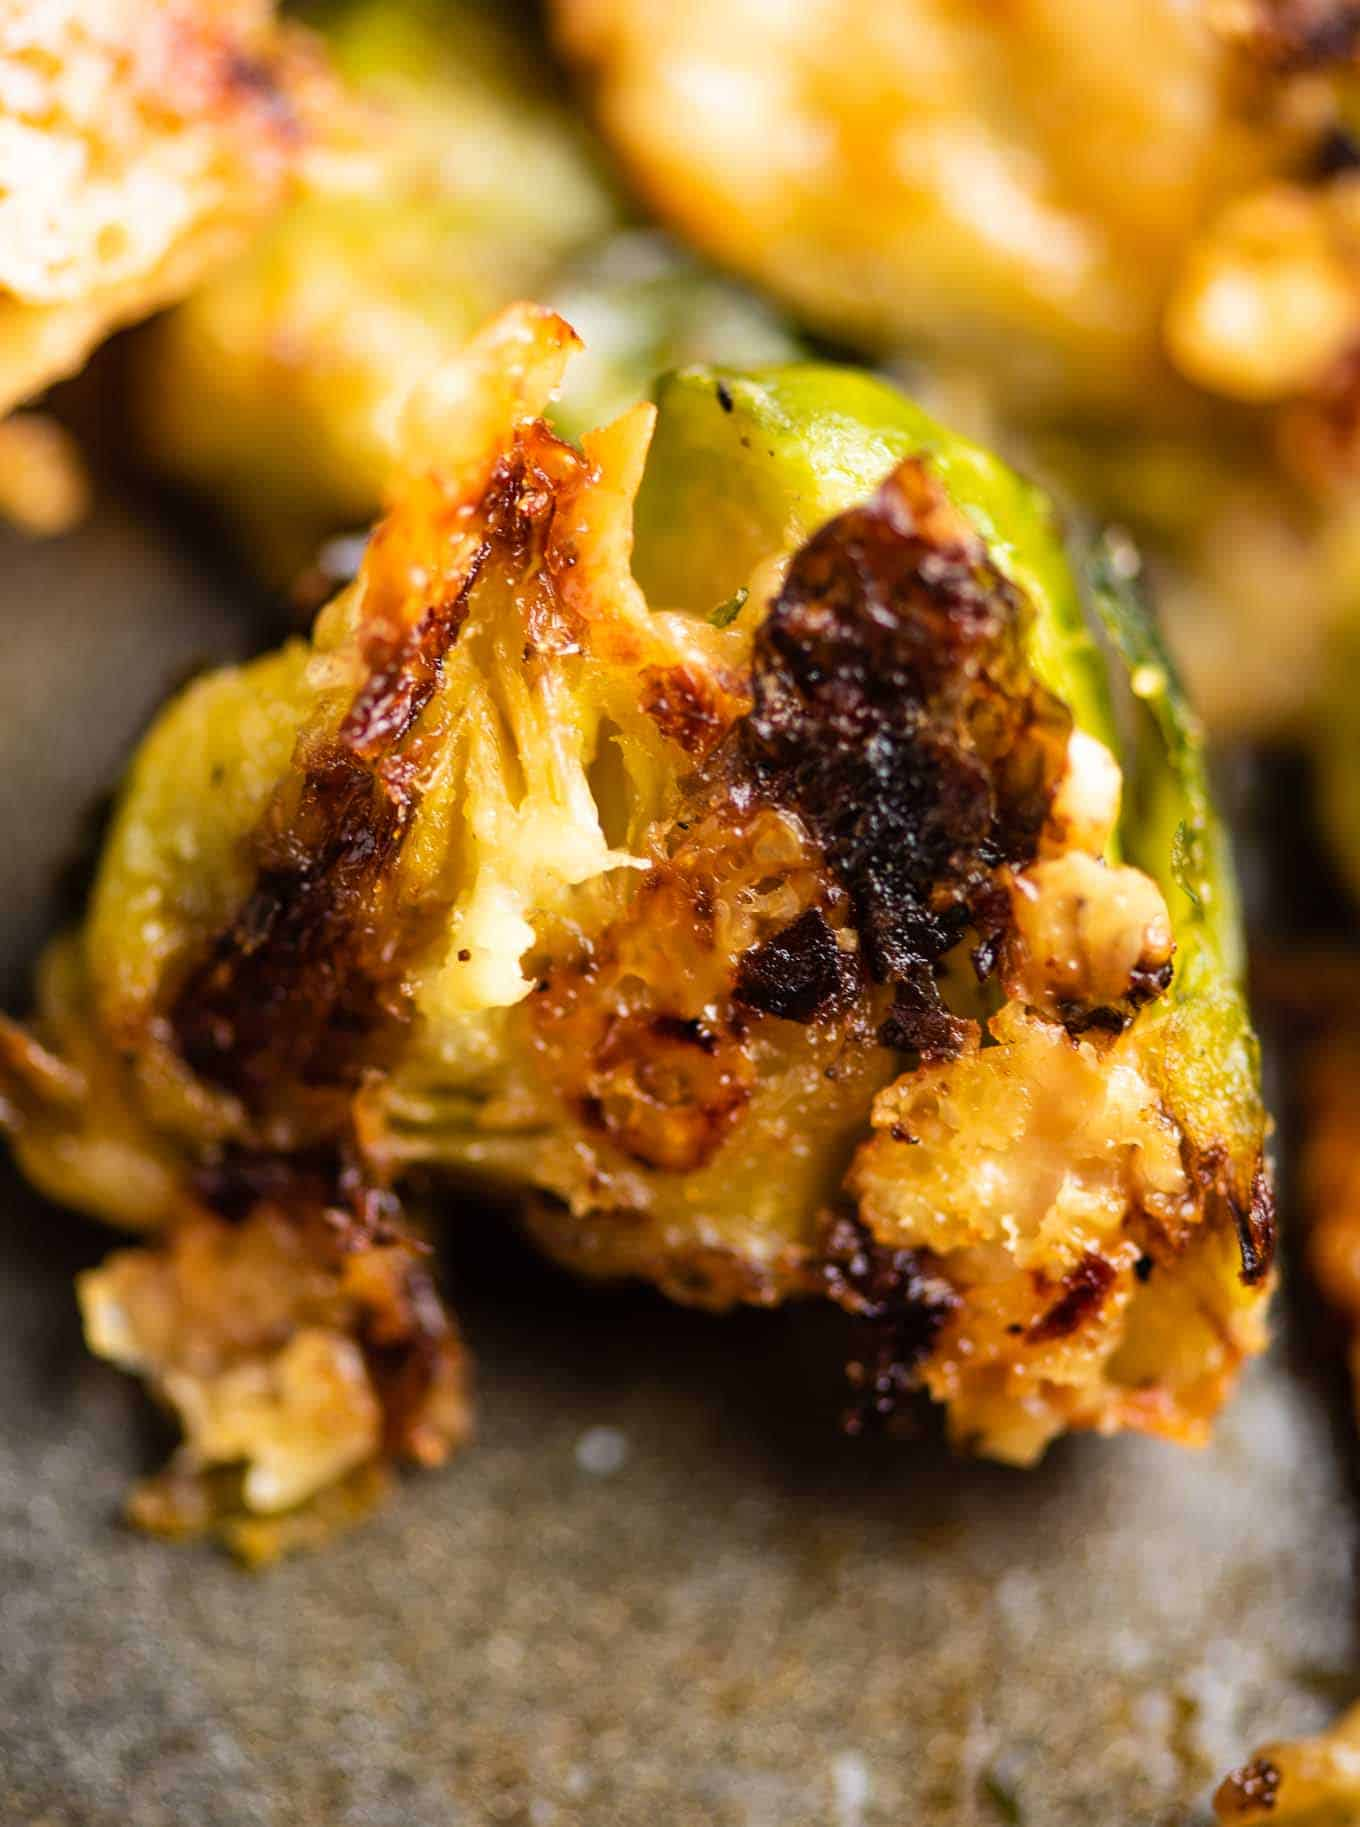 up close picture of a roasted brussel sprout with crispy edges